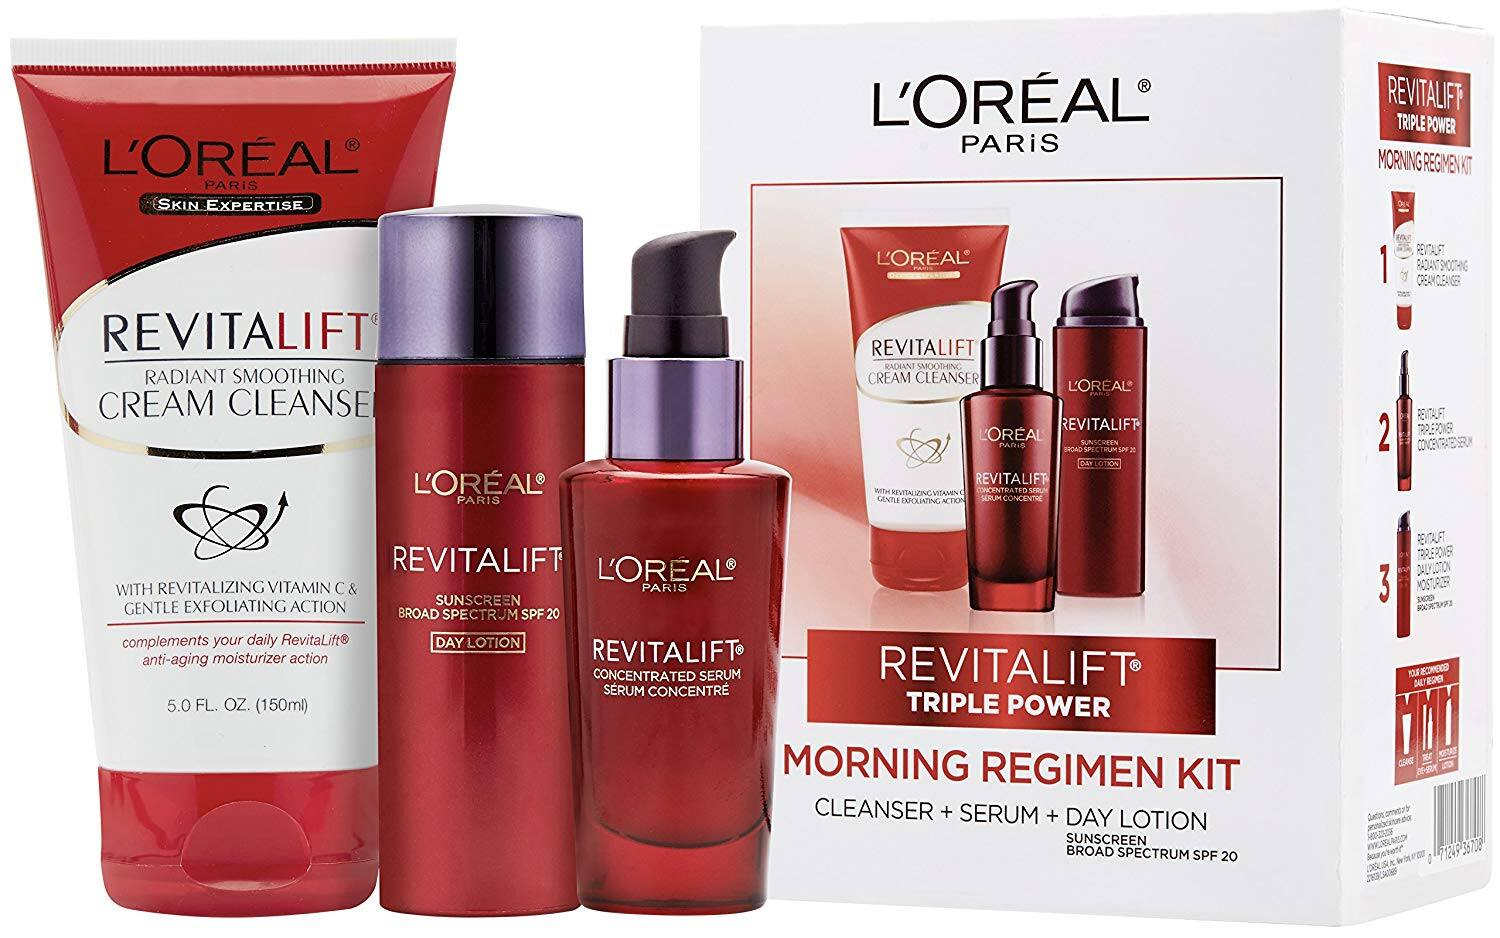 L'Oreal Paris Revitalift Cleanser, Serum, Day Lotion Gift Set - $36.55 - Free Shipping for Amazon Prime Members